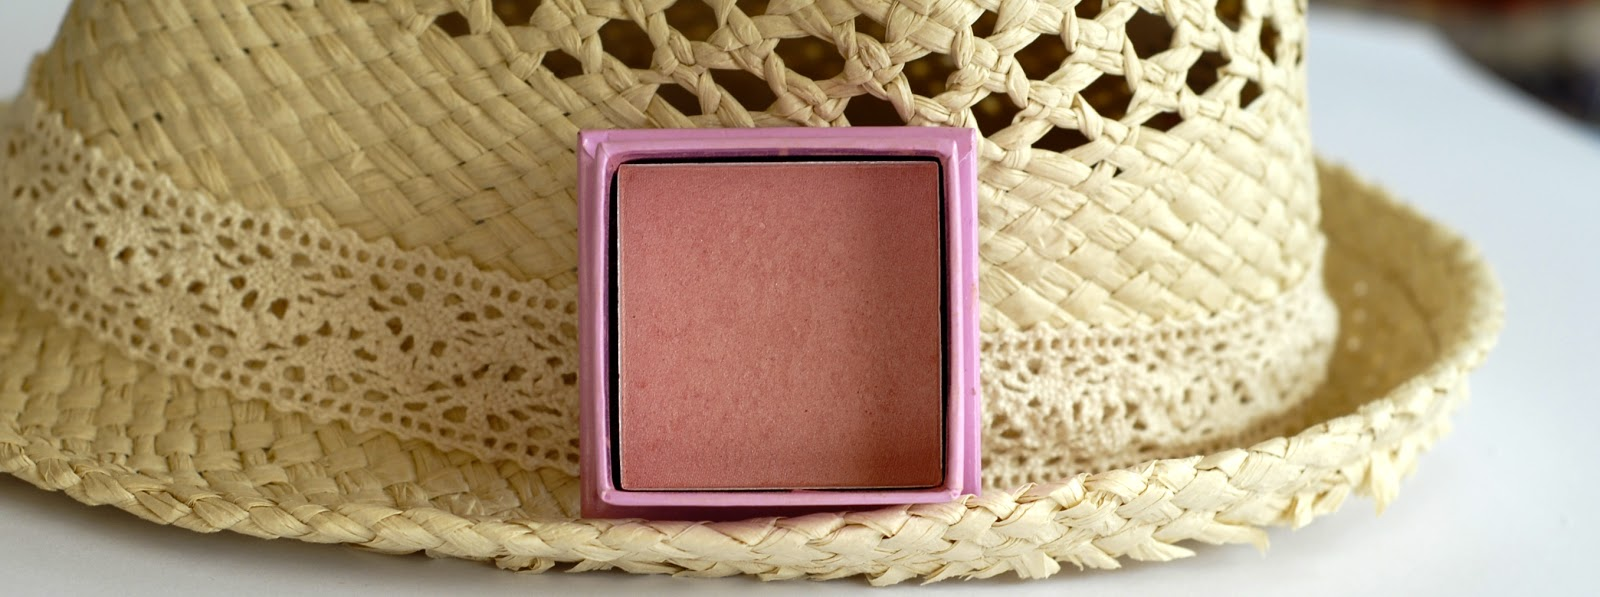 W7 Candy Floss Brightening Powder